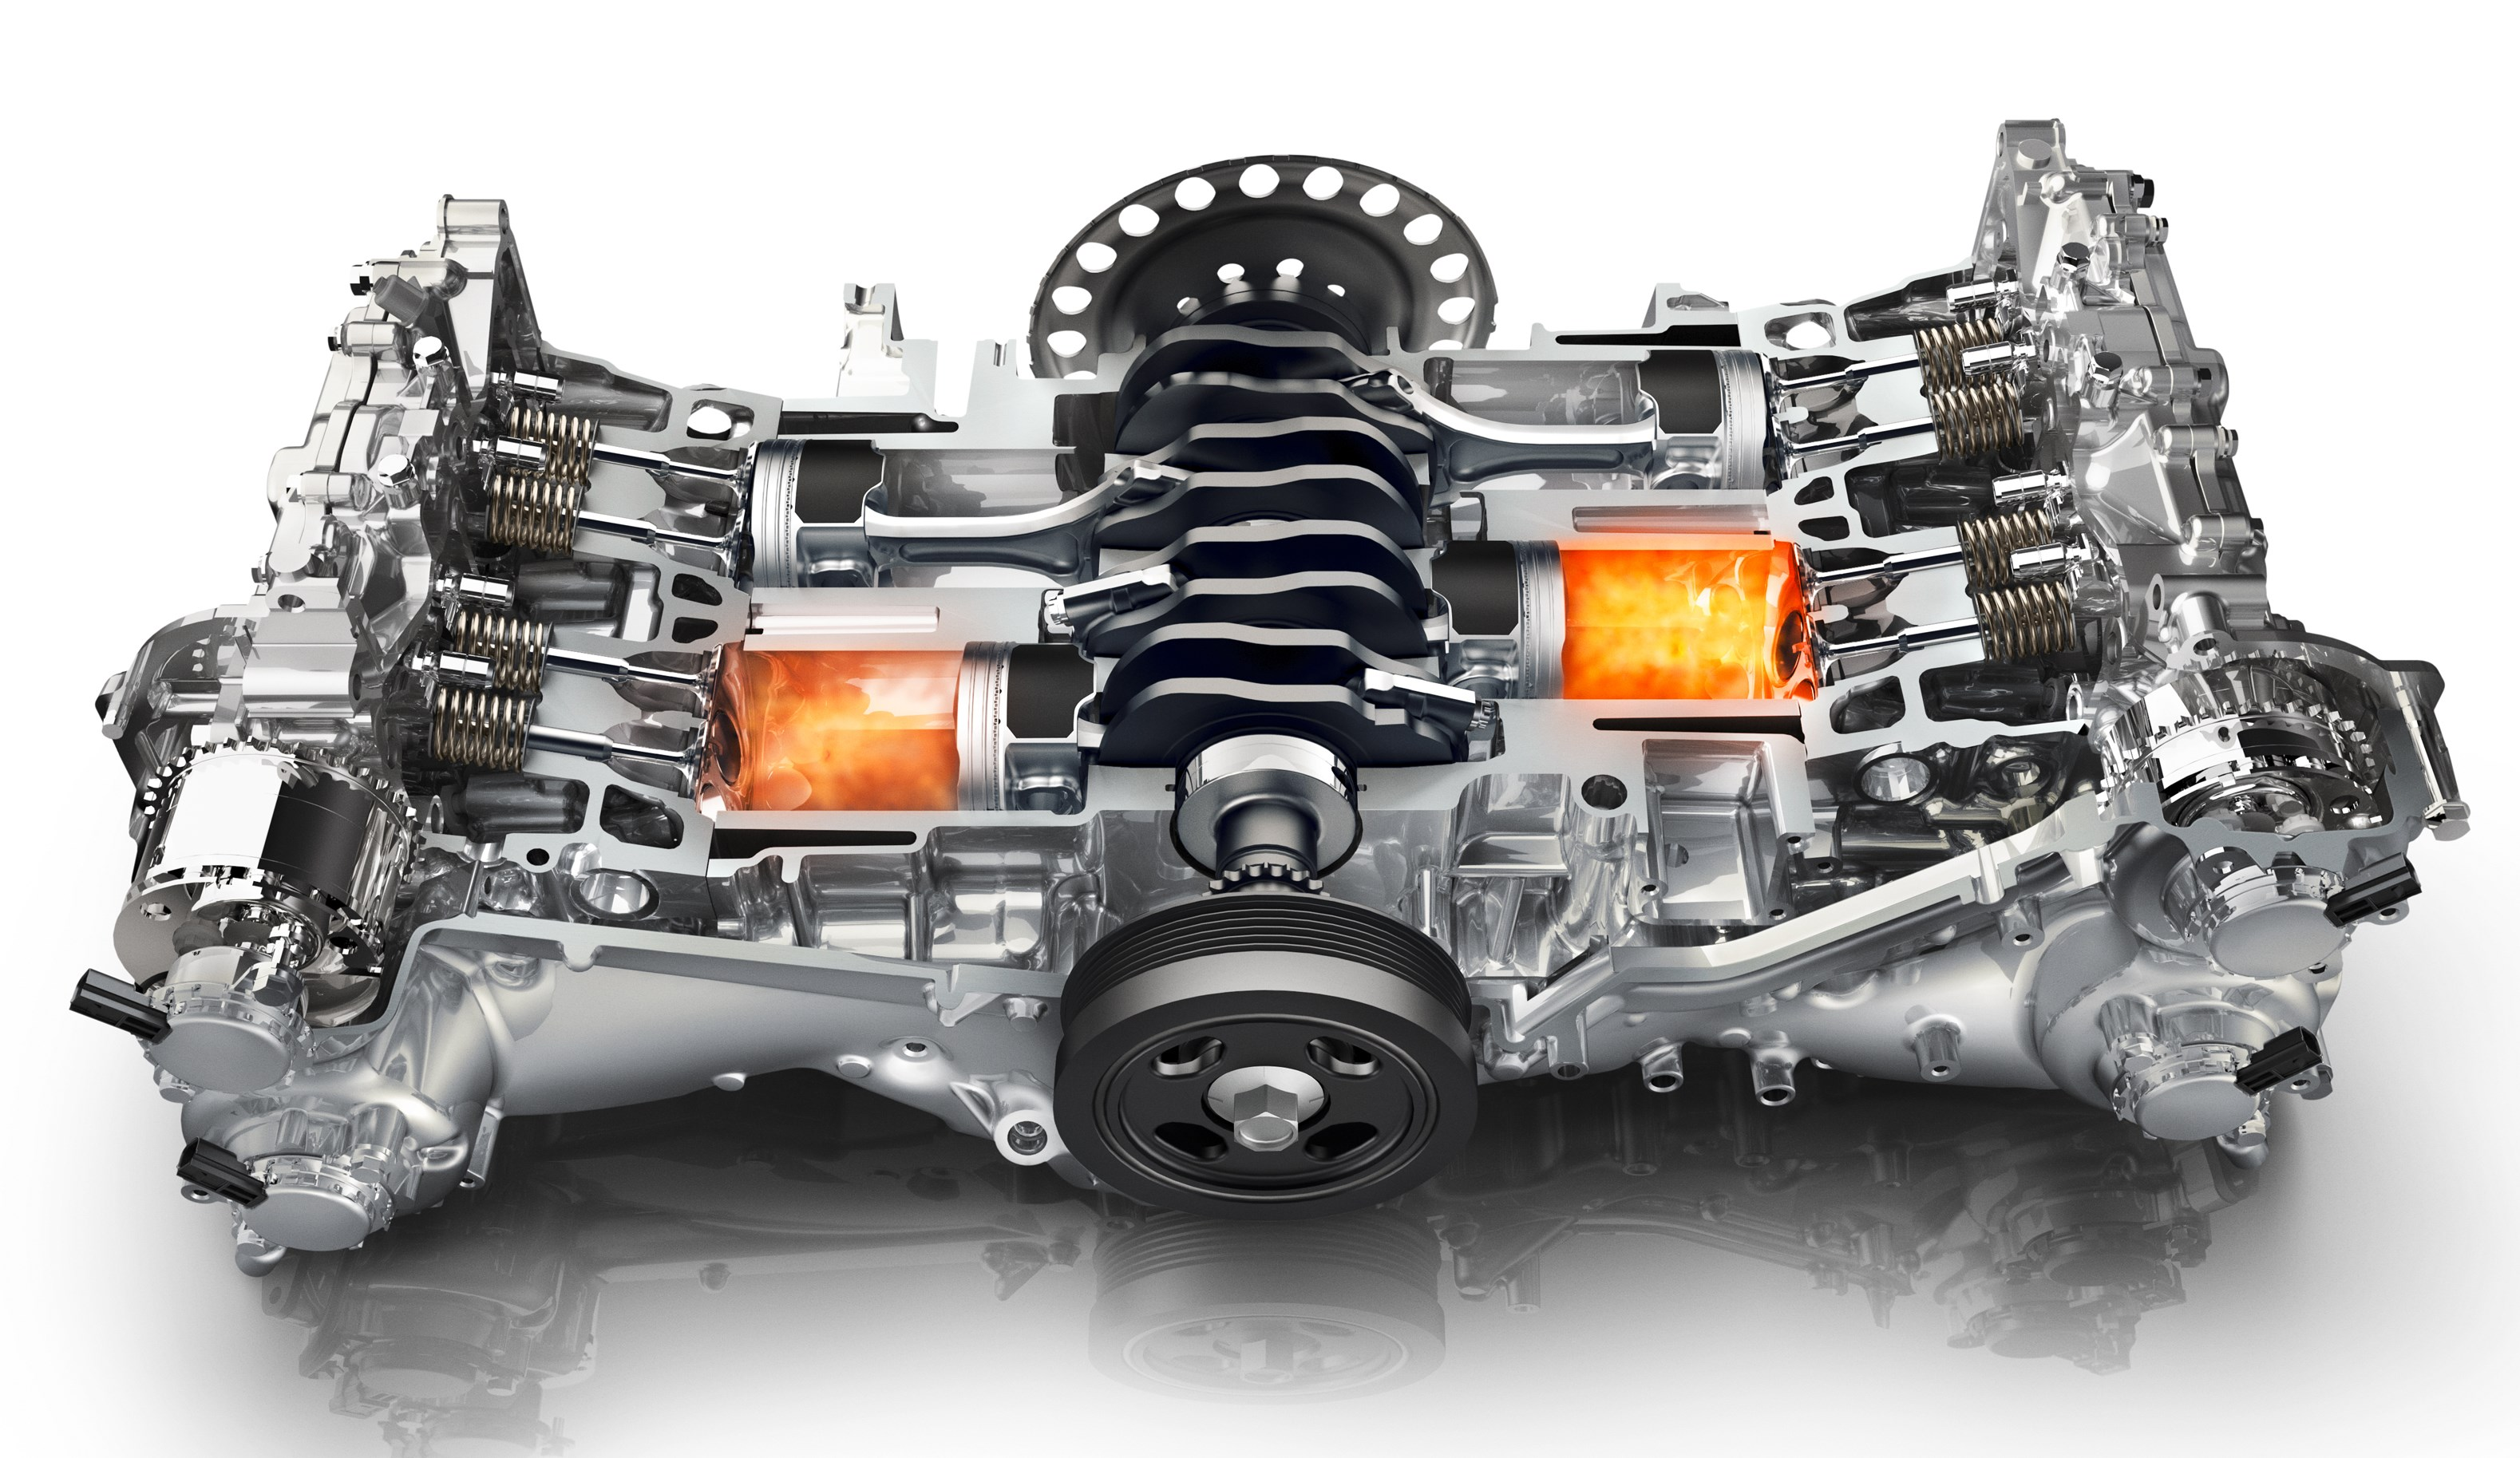 ej25 subaru boxer engine diagram motor boxer | automotiva ferrari boxer engine diagram